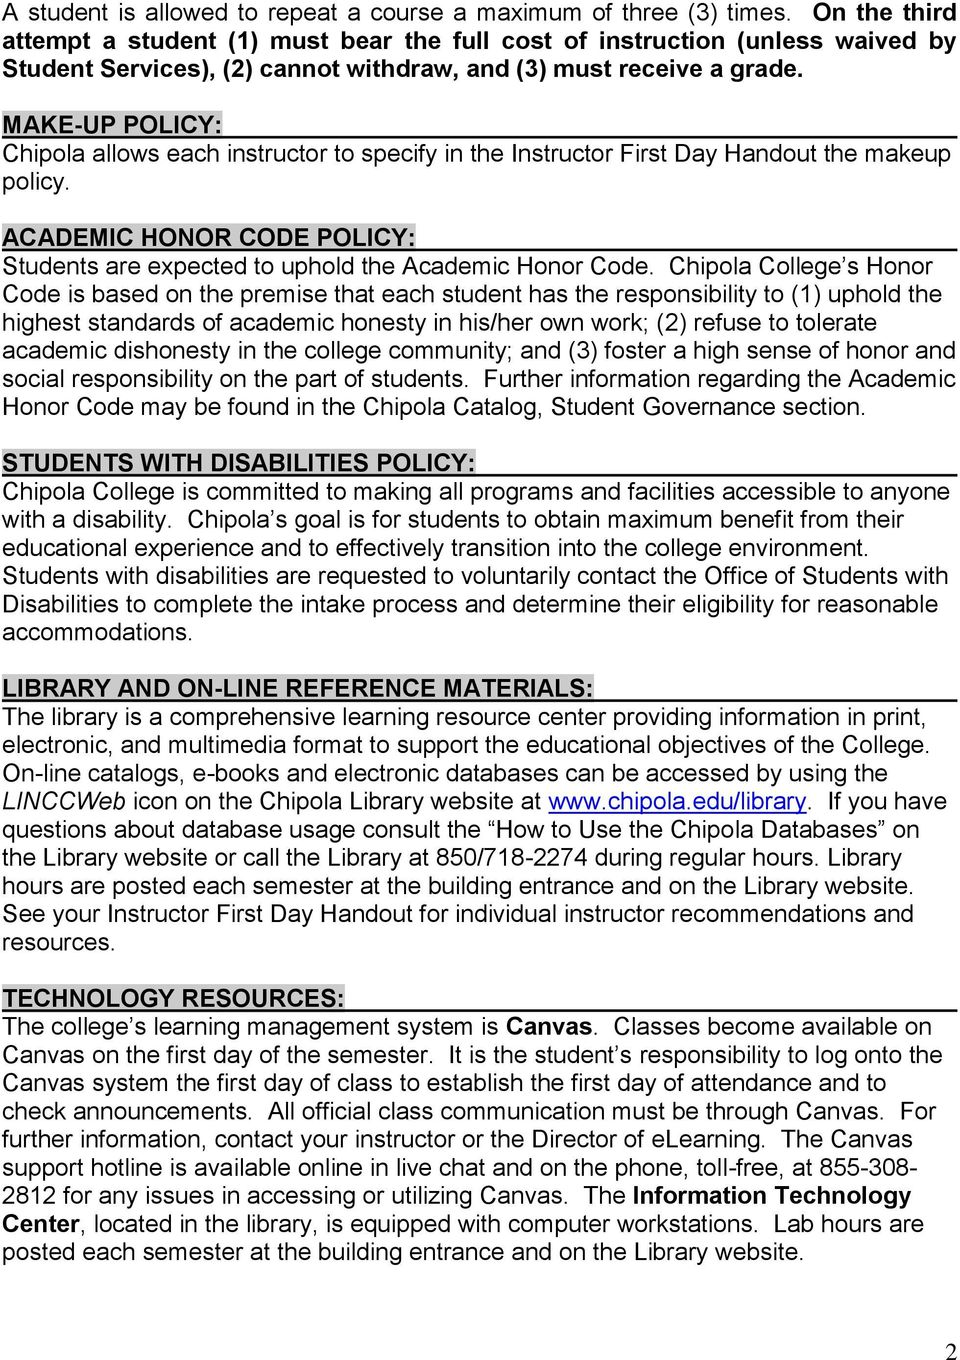 MAKE-UP POLICY: Chipola allows each instructor to specify in the Instructor First Day Handout the makeup policy. ACADEMIC HONOR CODE POLICY: Students are expected to uphold the Academic Honor Code.